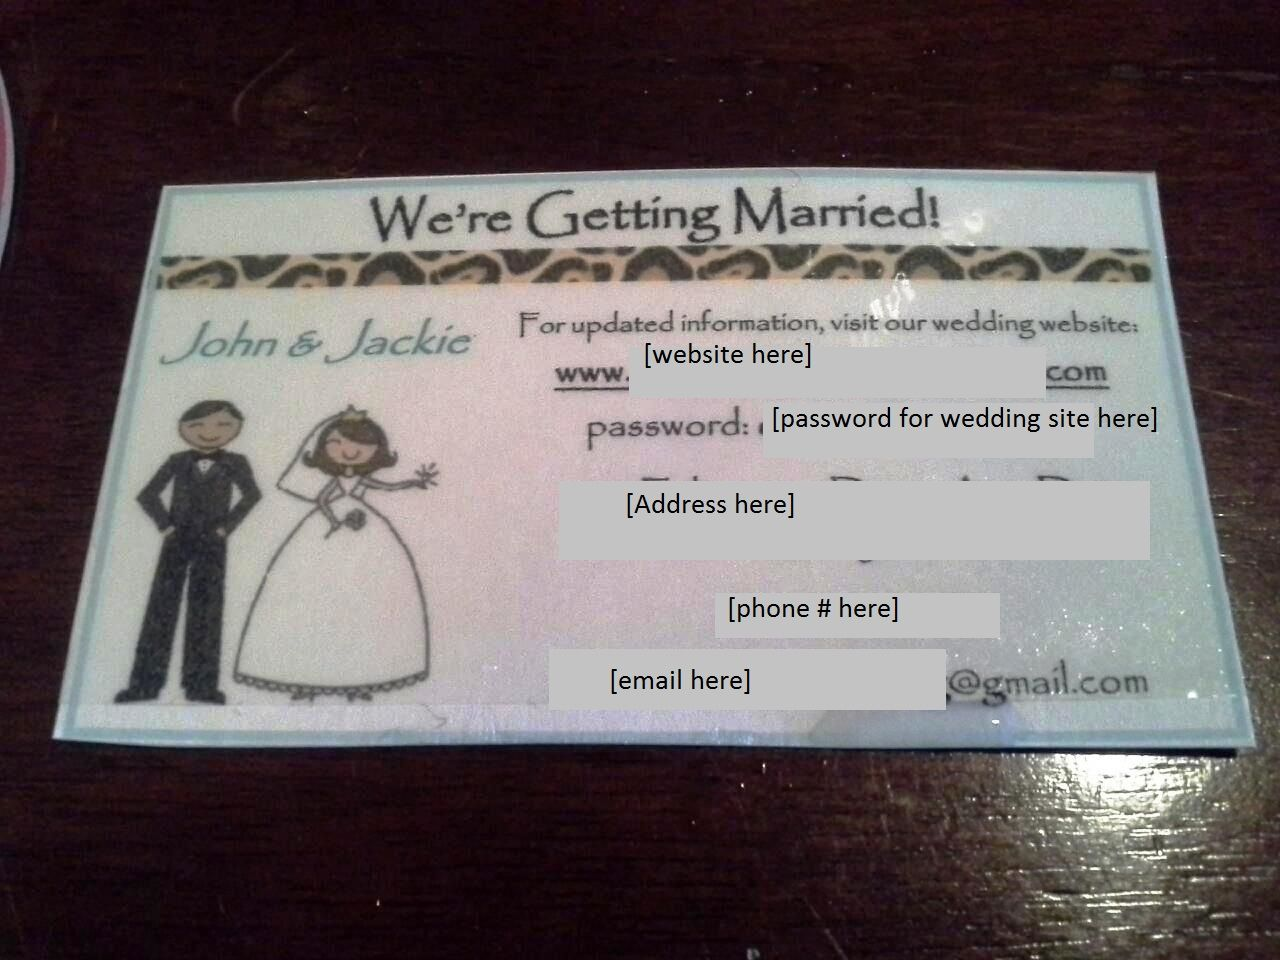 I designed these wedding cards to scatter & give out at our engagement party.  I didn't have access to a laminator, so I laminated each by hand using packing tape.   They included our names, wedding website, wedding website password for guests, address, phone, and joint wedding email, so that family will have easy access to wedding info.  On the back of the card I had info for how to post to our WedPics app. We were too busy to take pictures, but we got 130+ from our guests linking their…